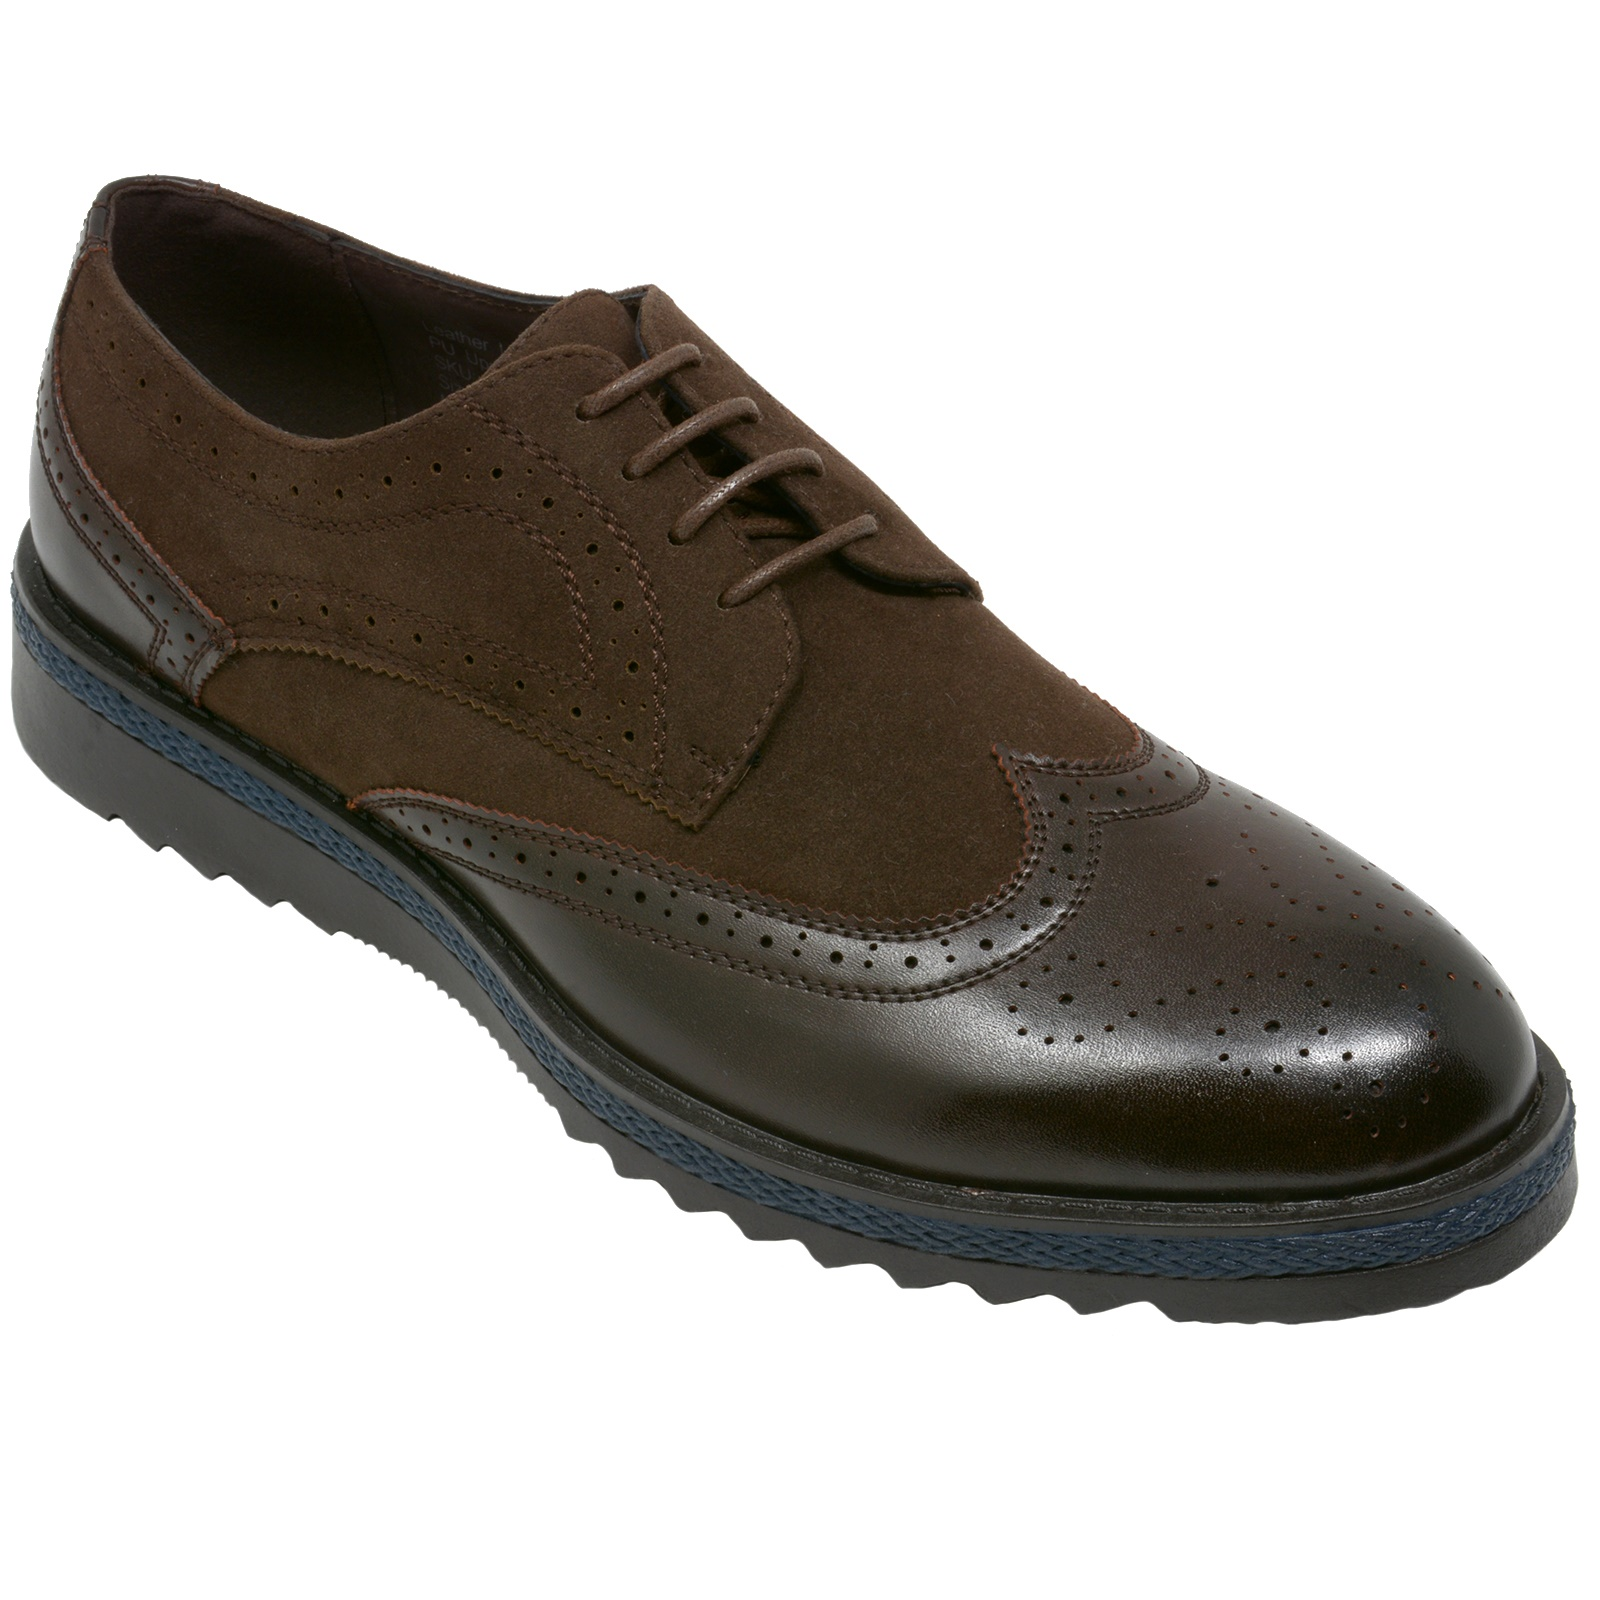 Alpine-Swiss-Alec-Mens-Wingtip-Shoes-1-5-Ripple-Sole-Leather-Insole-amp-Lining thumbnail 13